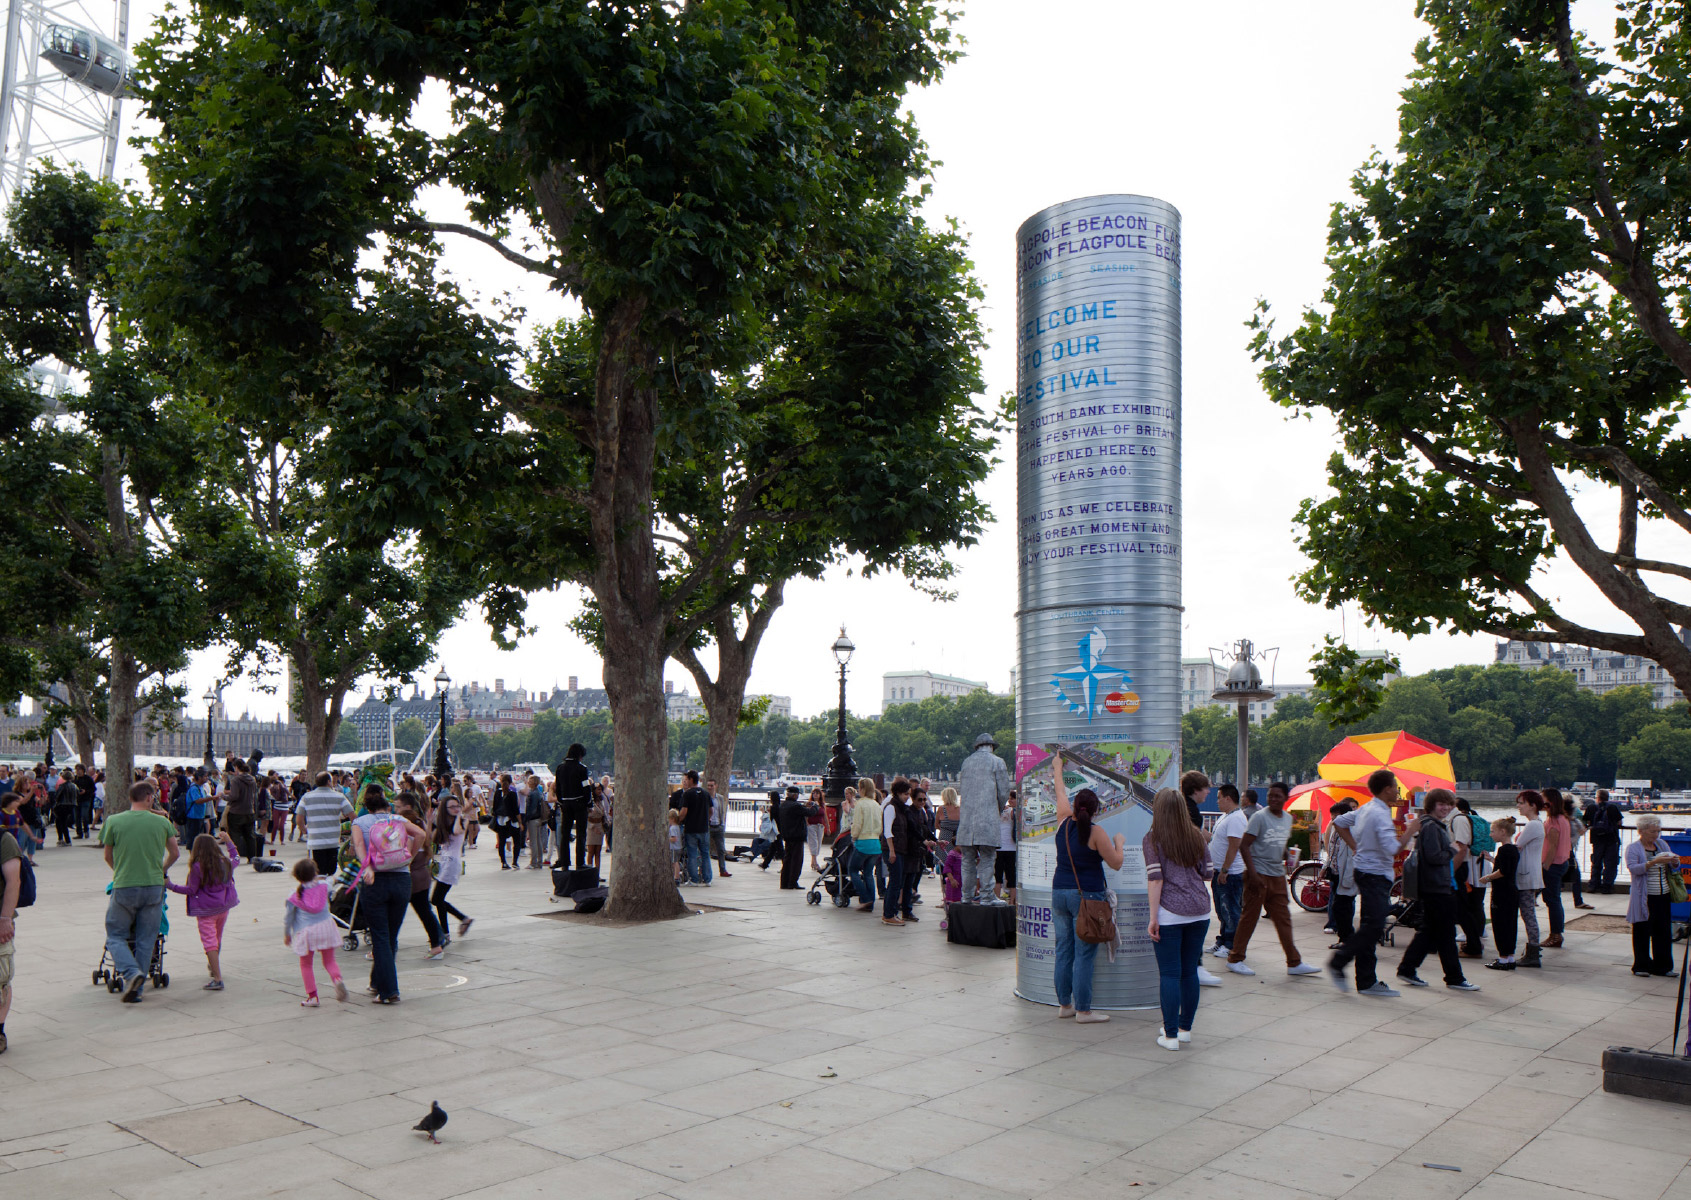 LYN_Atelier_Festival-of-Britain_Southbank-Centre_03.jpg